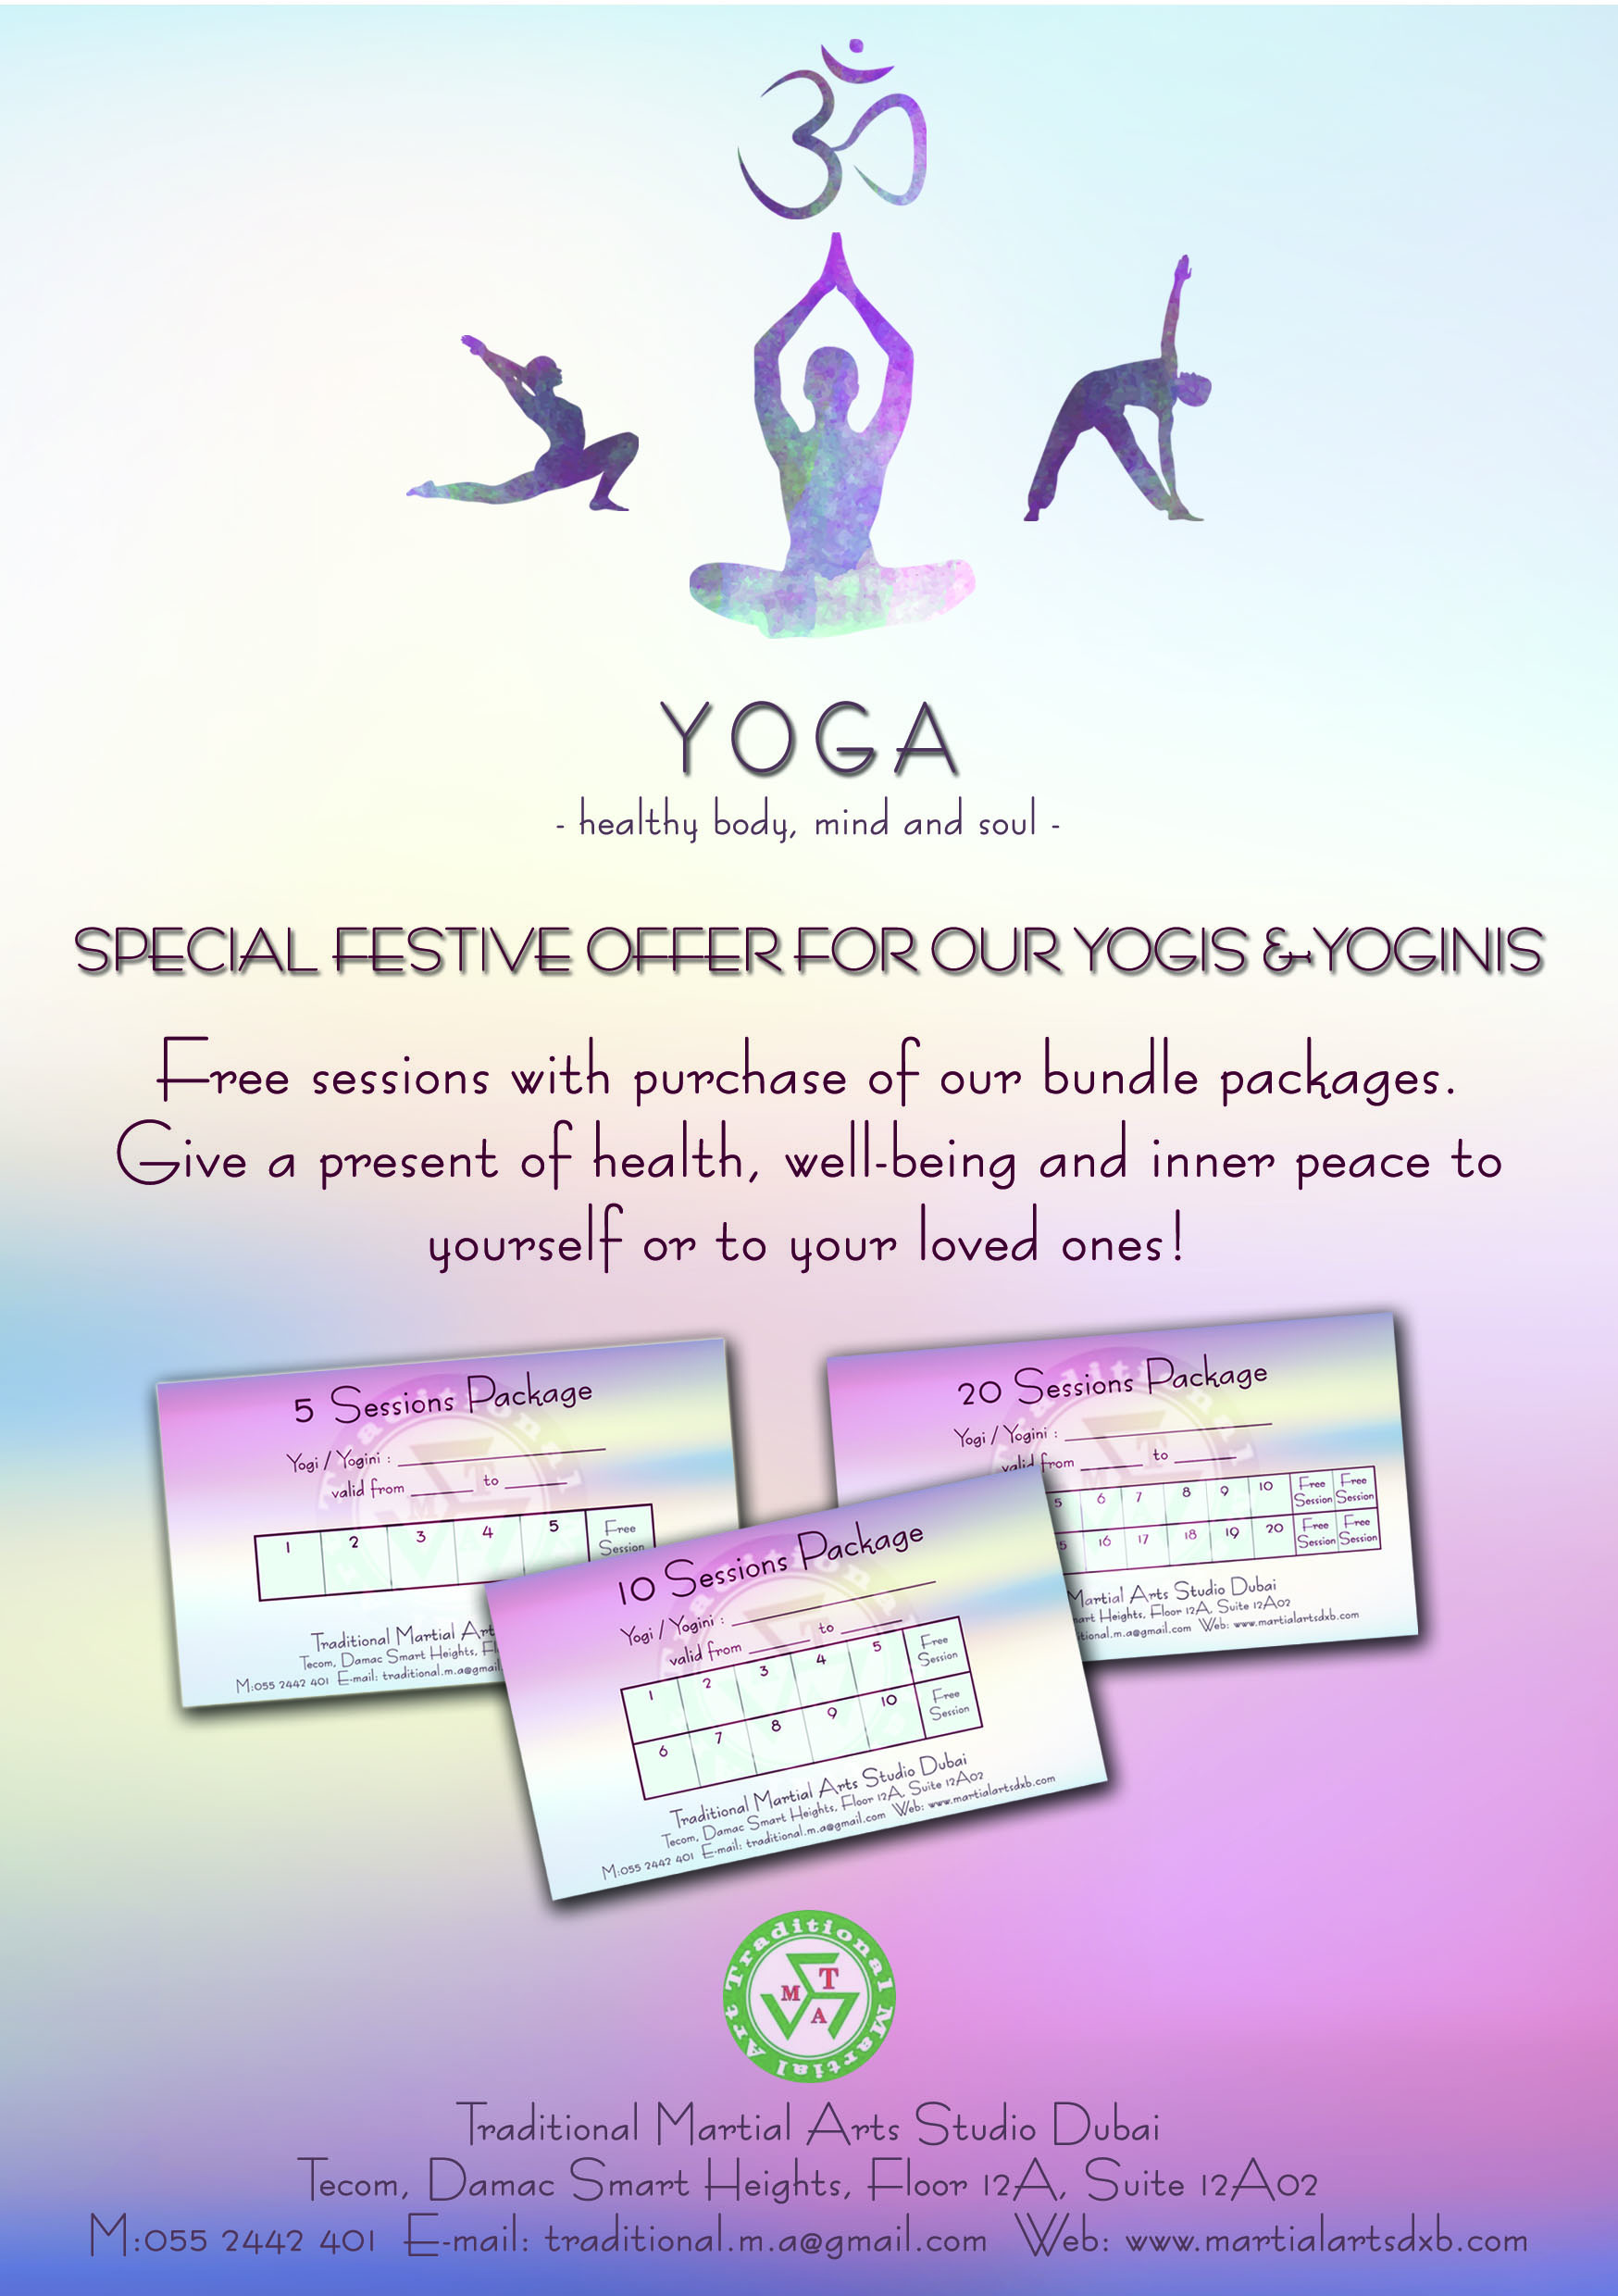 enjoy free sessions upon purchase of any of our yoga bundle packages!